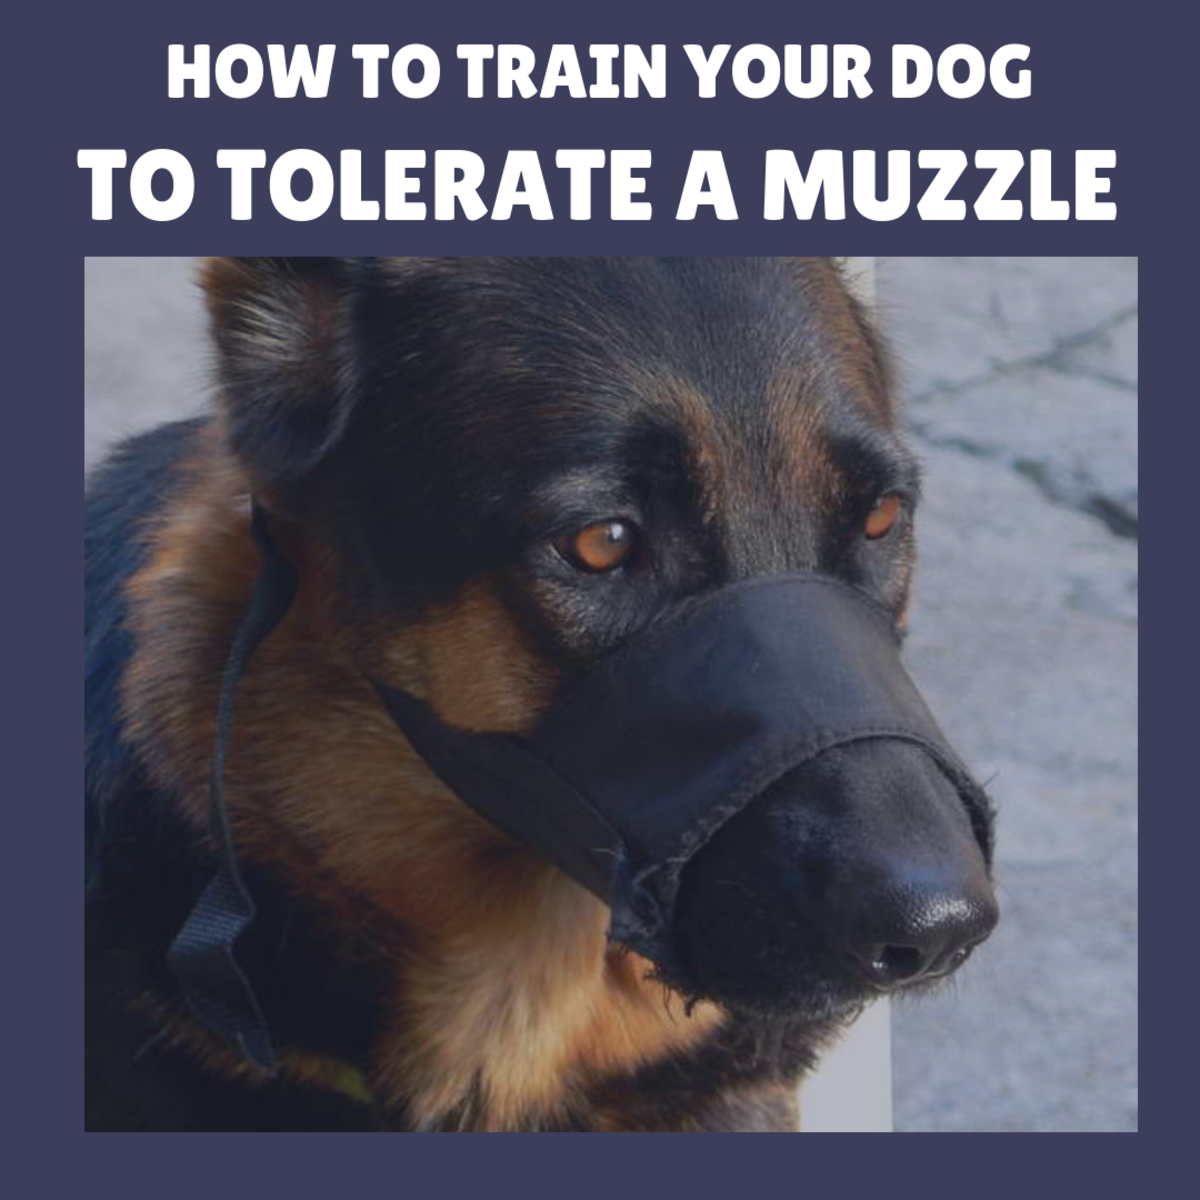 Wearing a muzzle doesn't have to be dreaded—train your dog by using positive reinforcement.